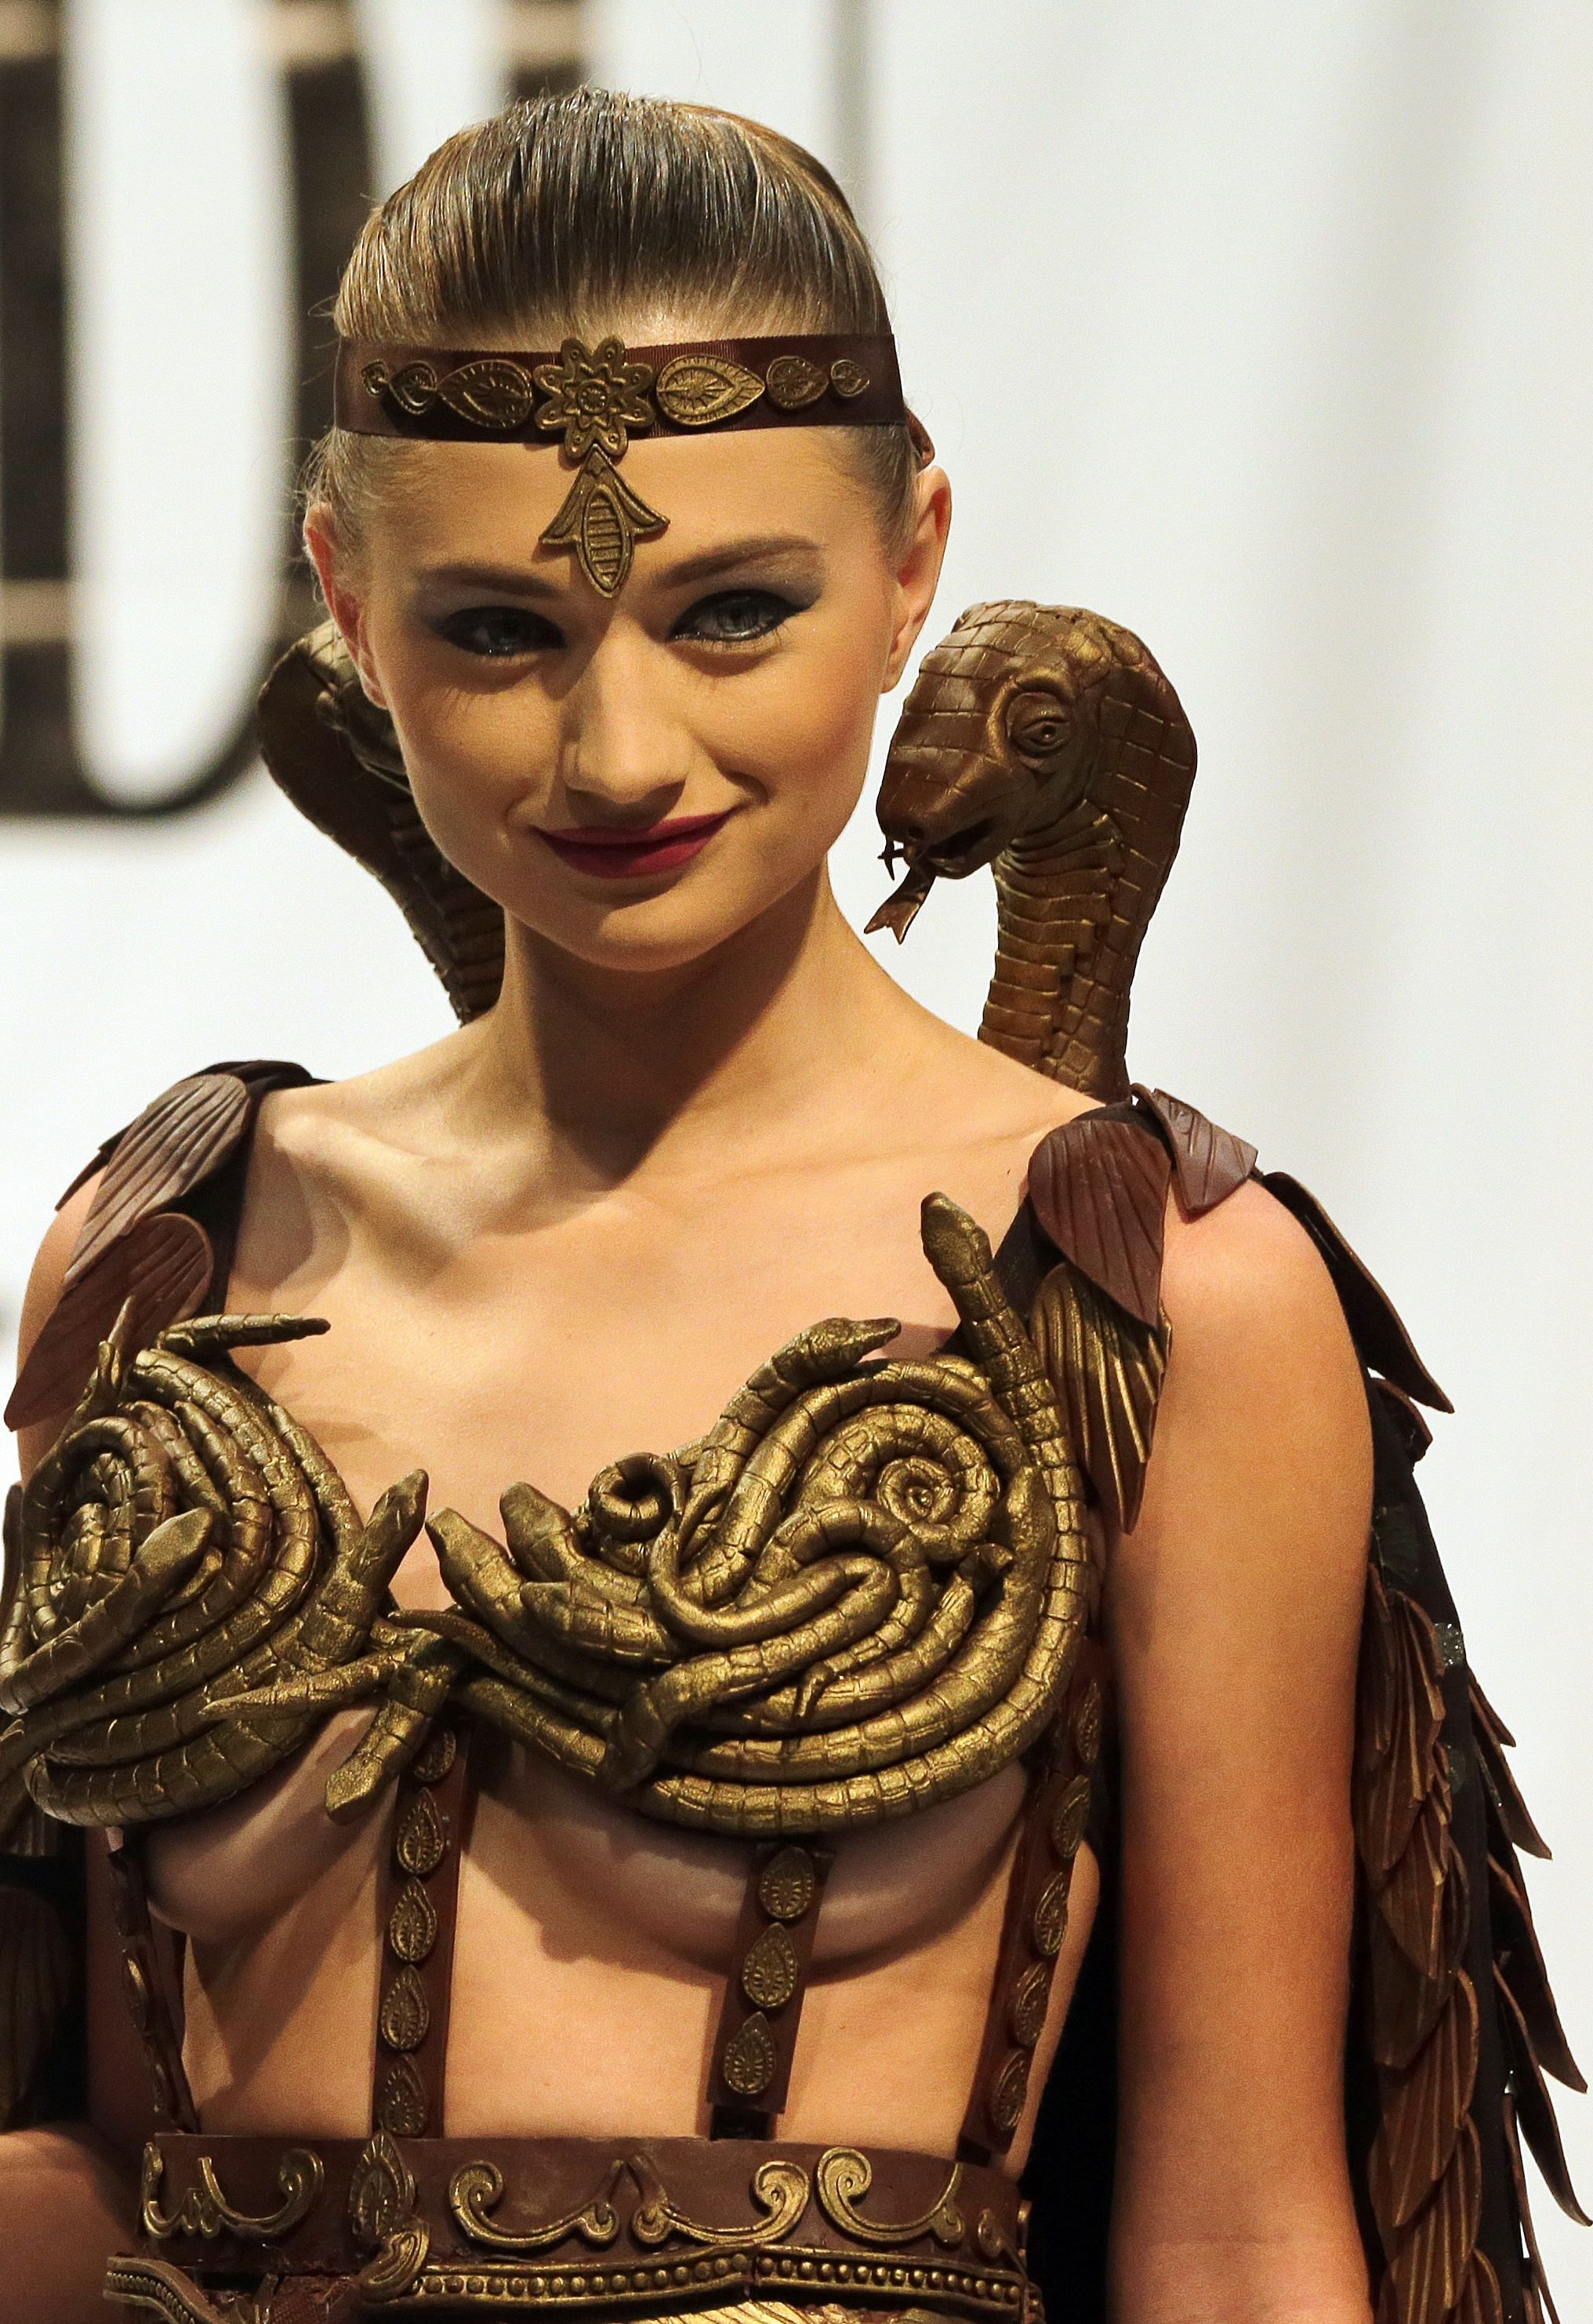 In Pictures: Edible chocolate outfits at the Chocolate Fashion ...